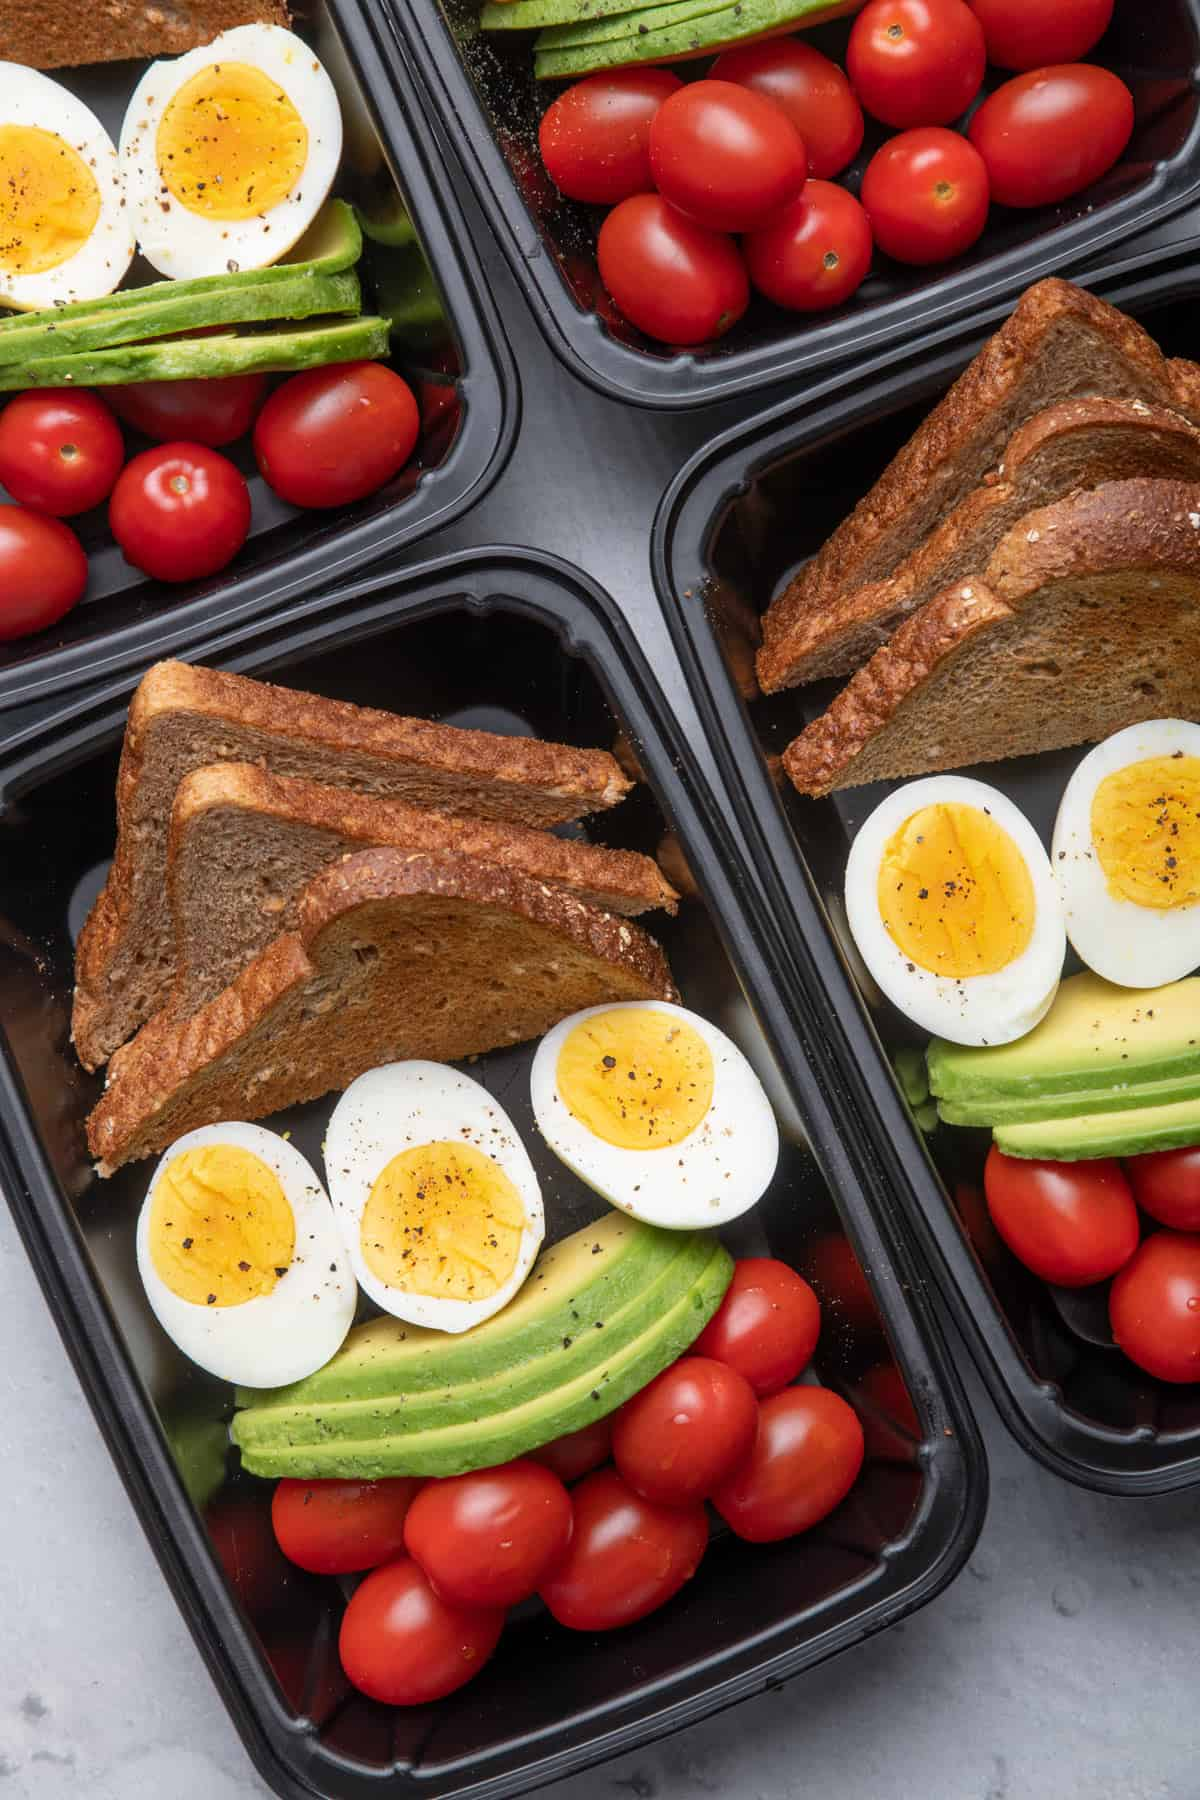 Meal prep containers with eggs, avocado, tomato and toast